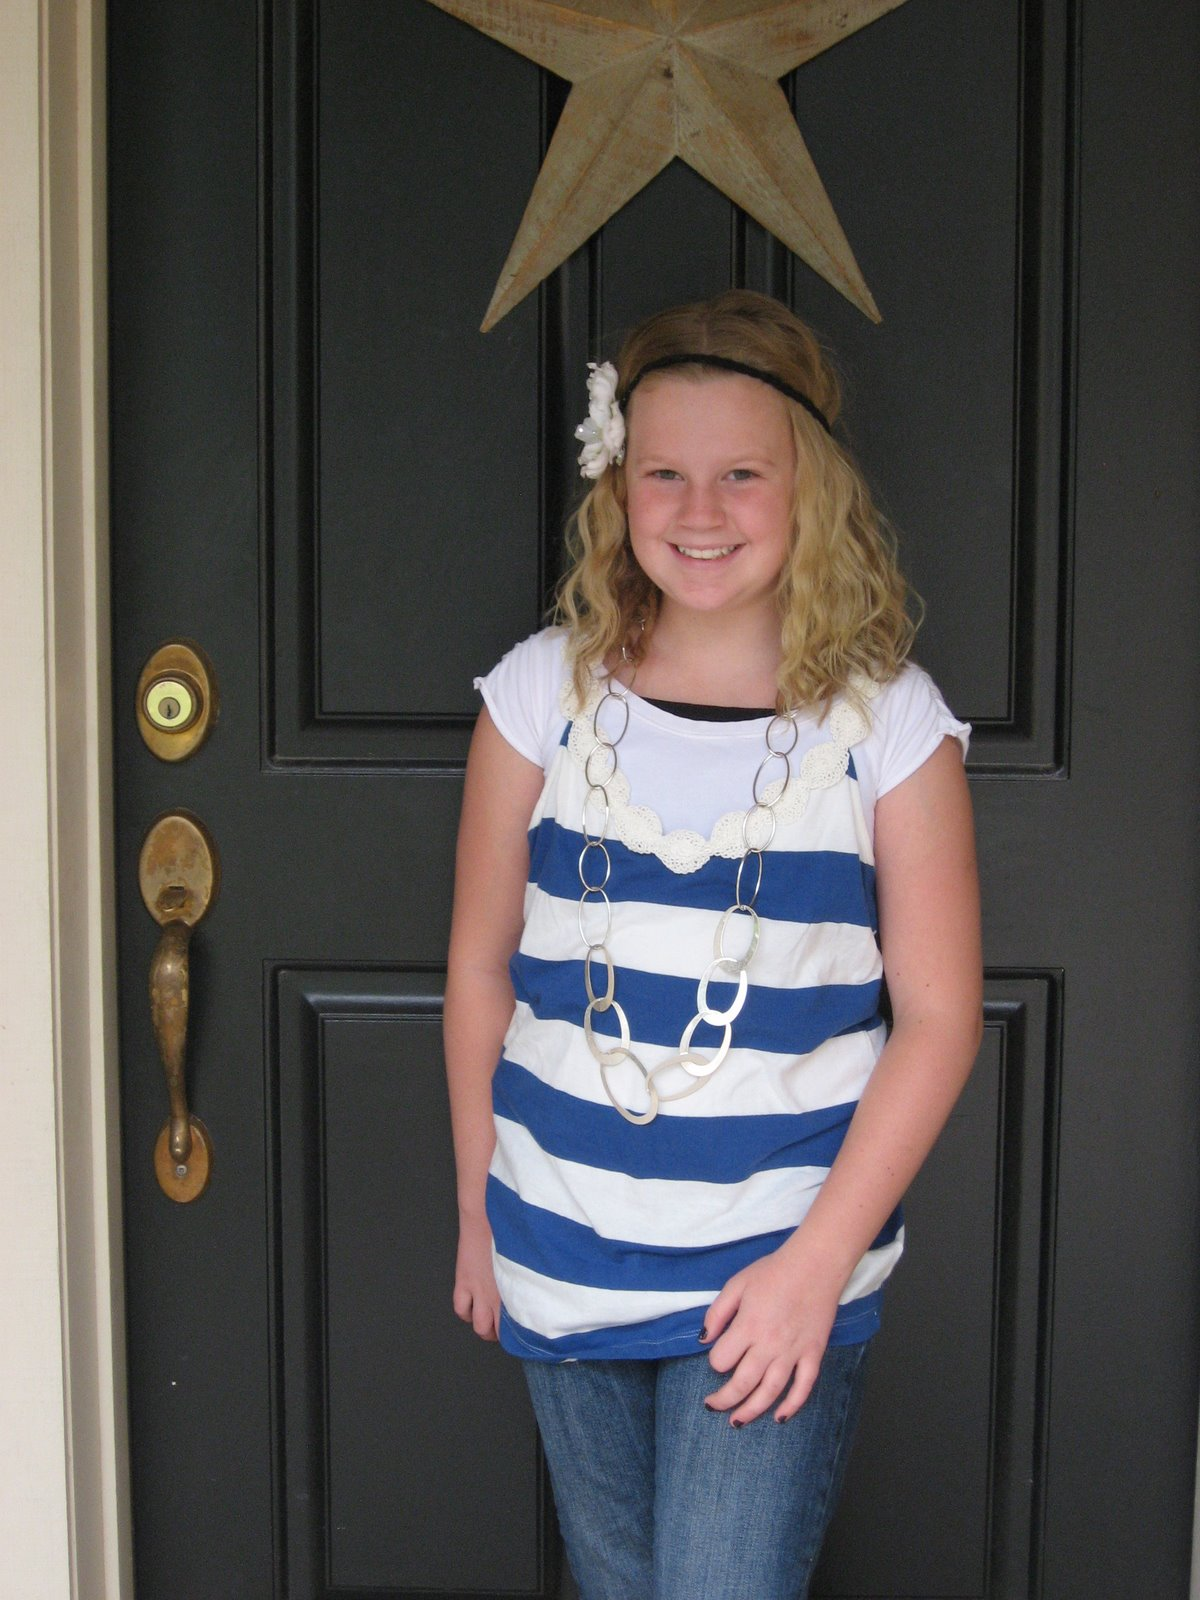 Ashley is headin to 4th grade!